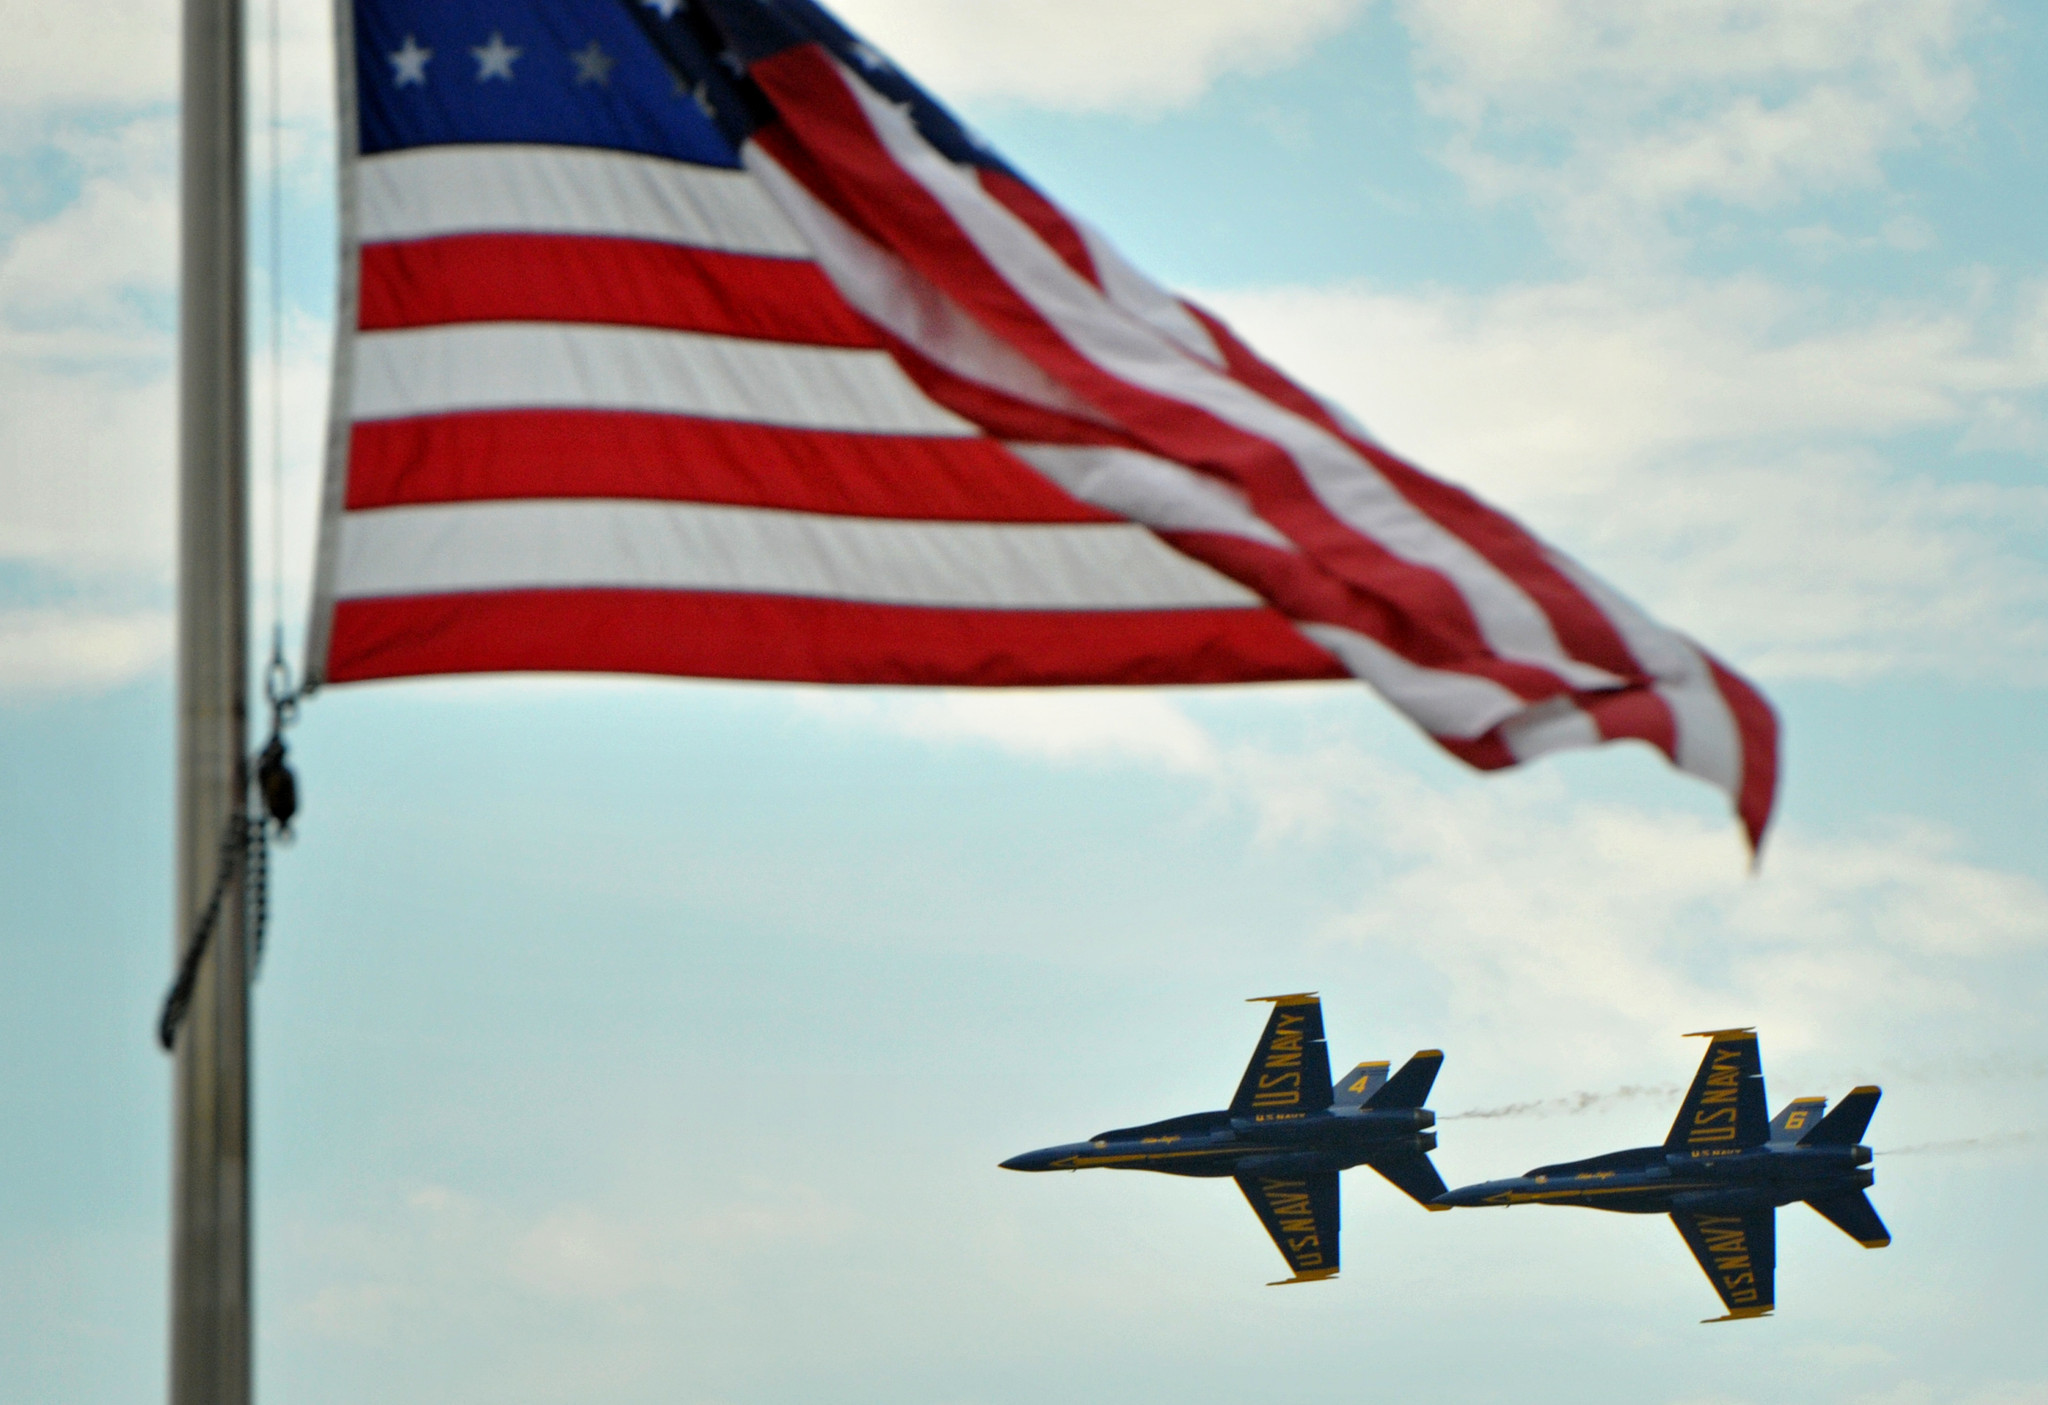 Blue Angels fly by [Pictures] - Over academy